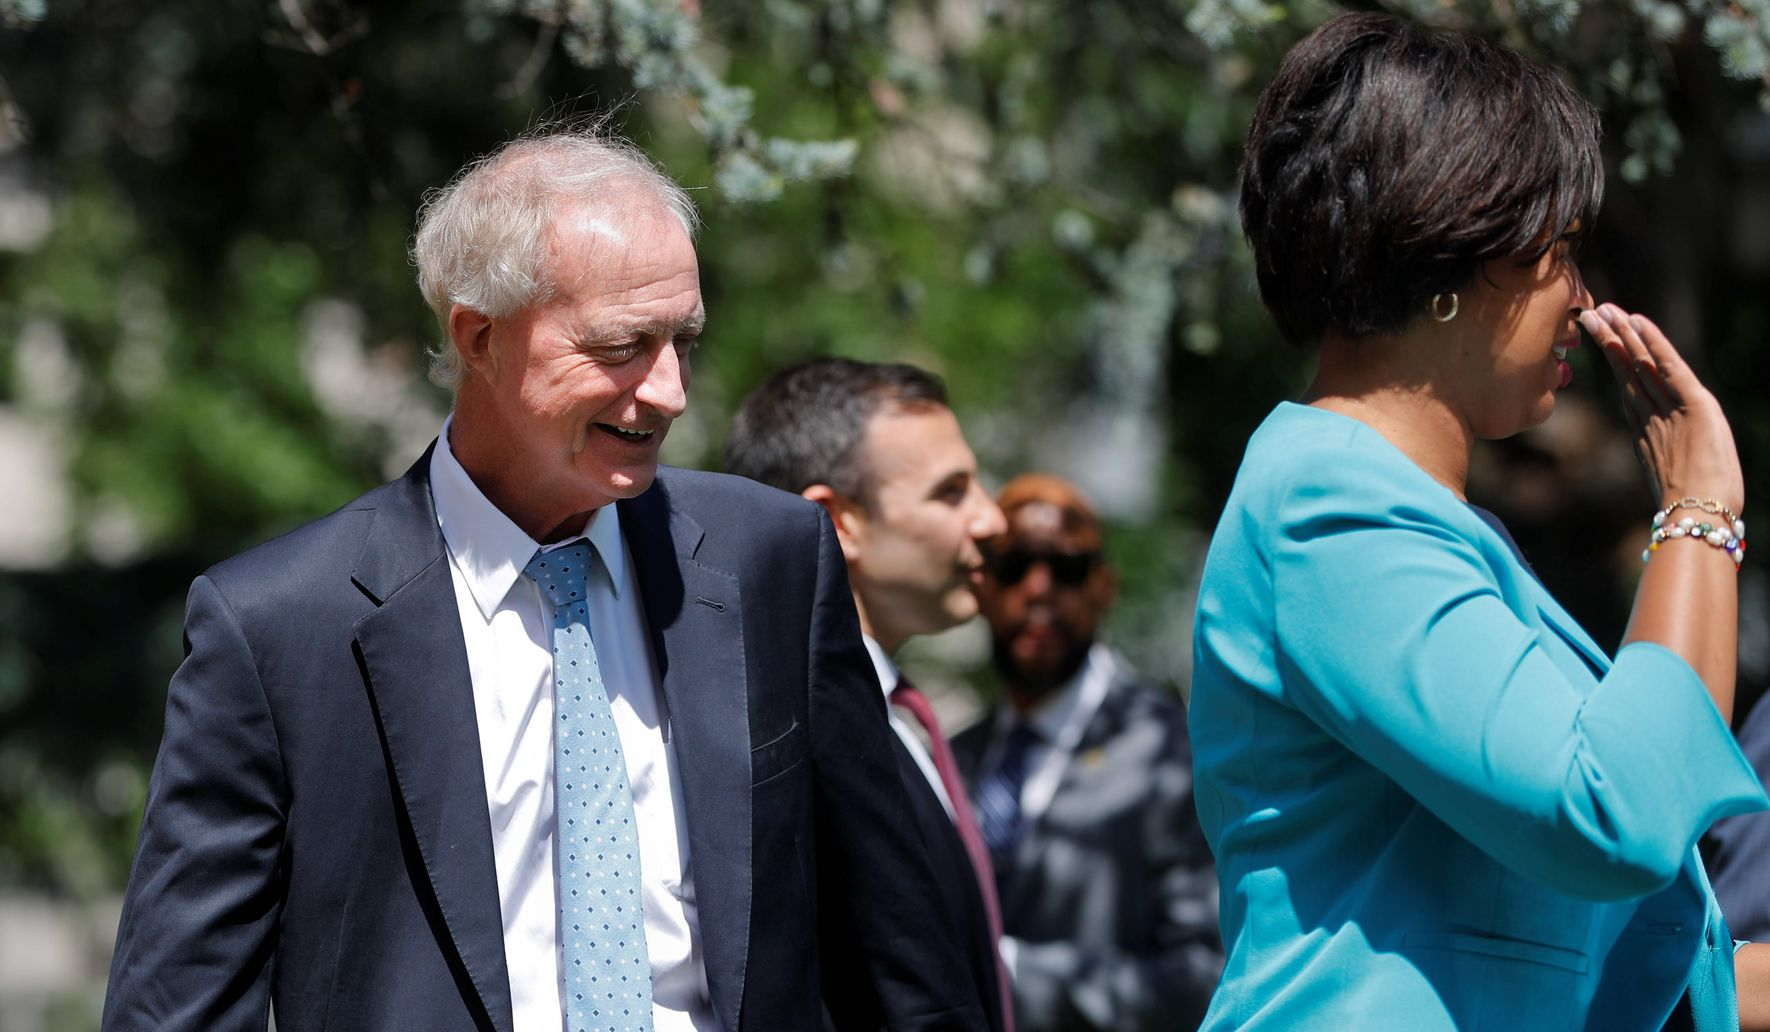 Jack Evans recommended for expulsion from D.C. Council by panel vote